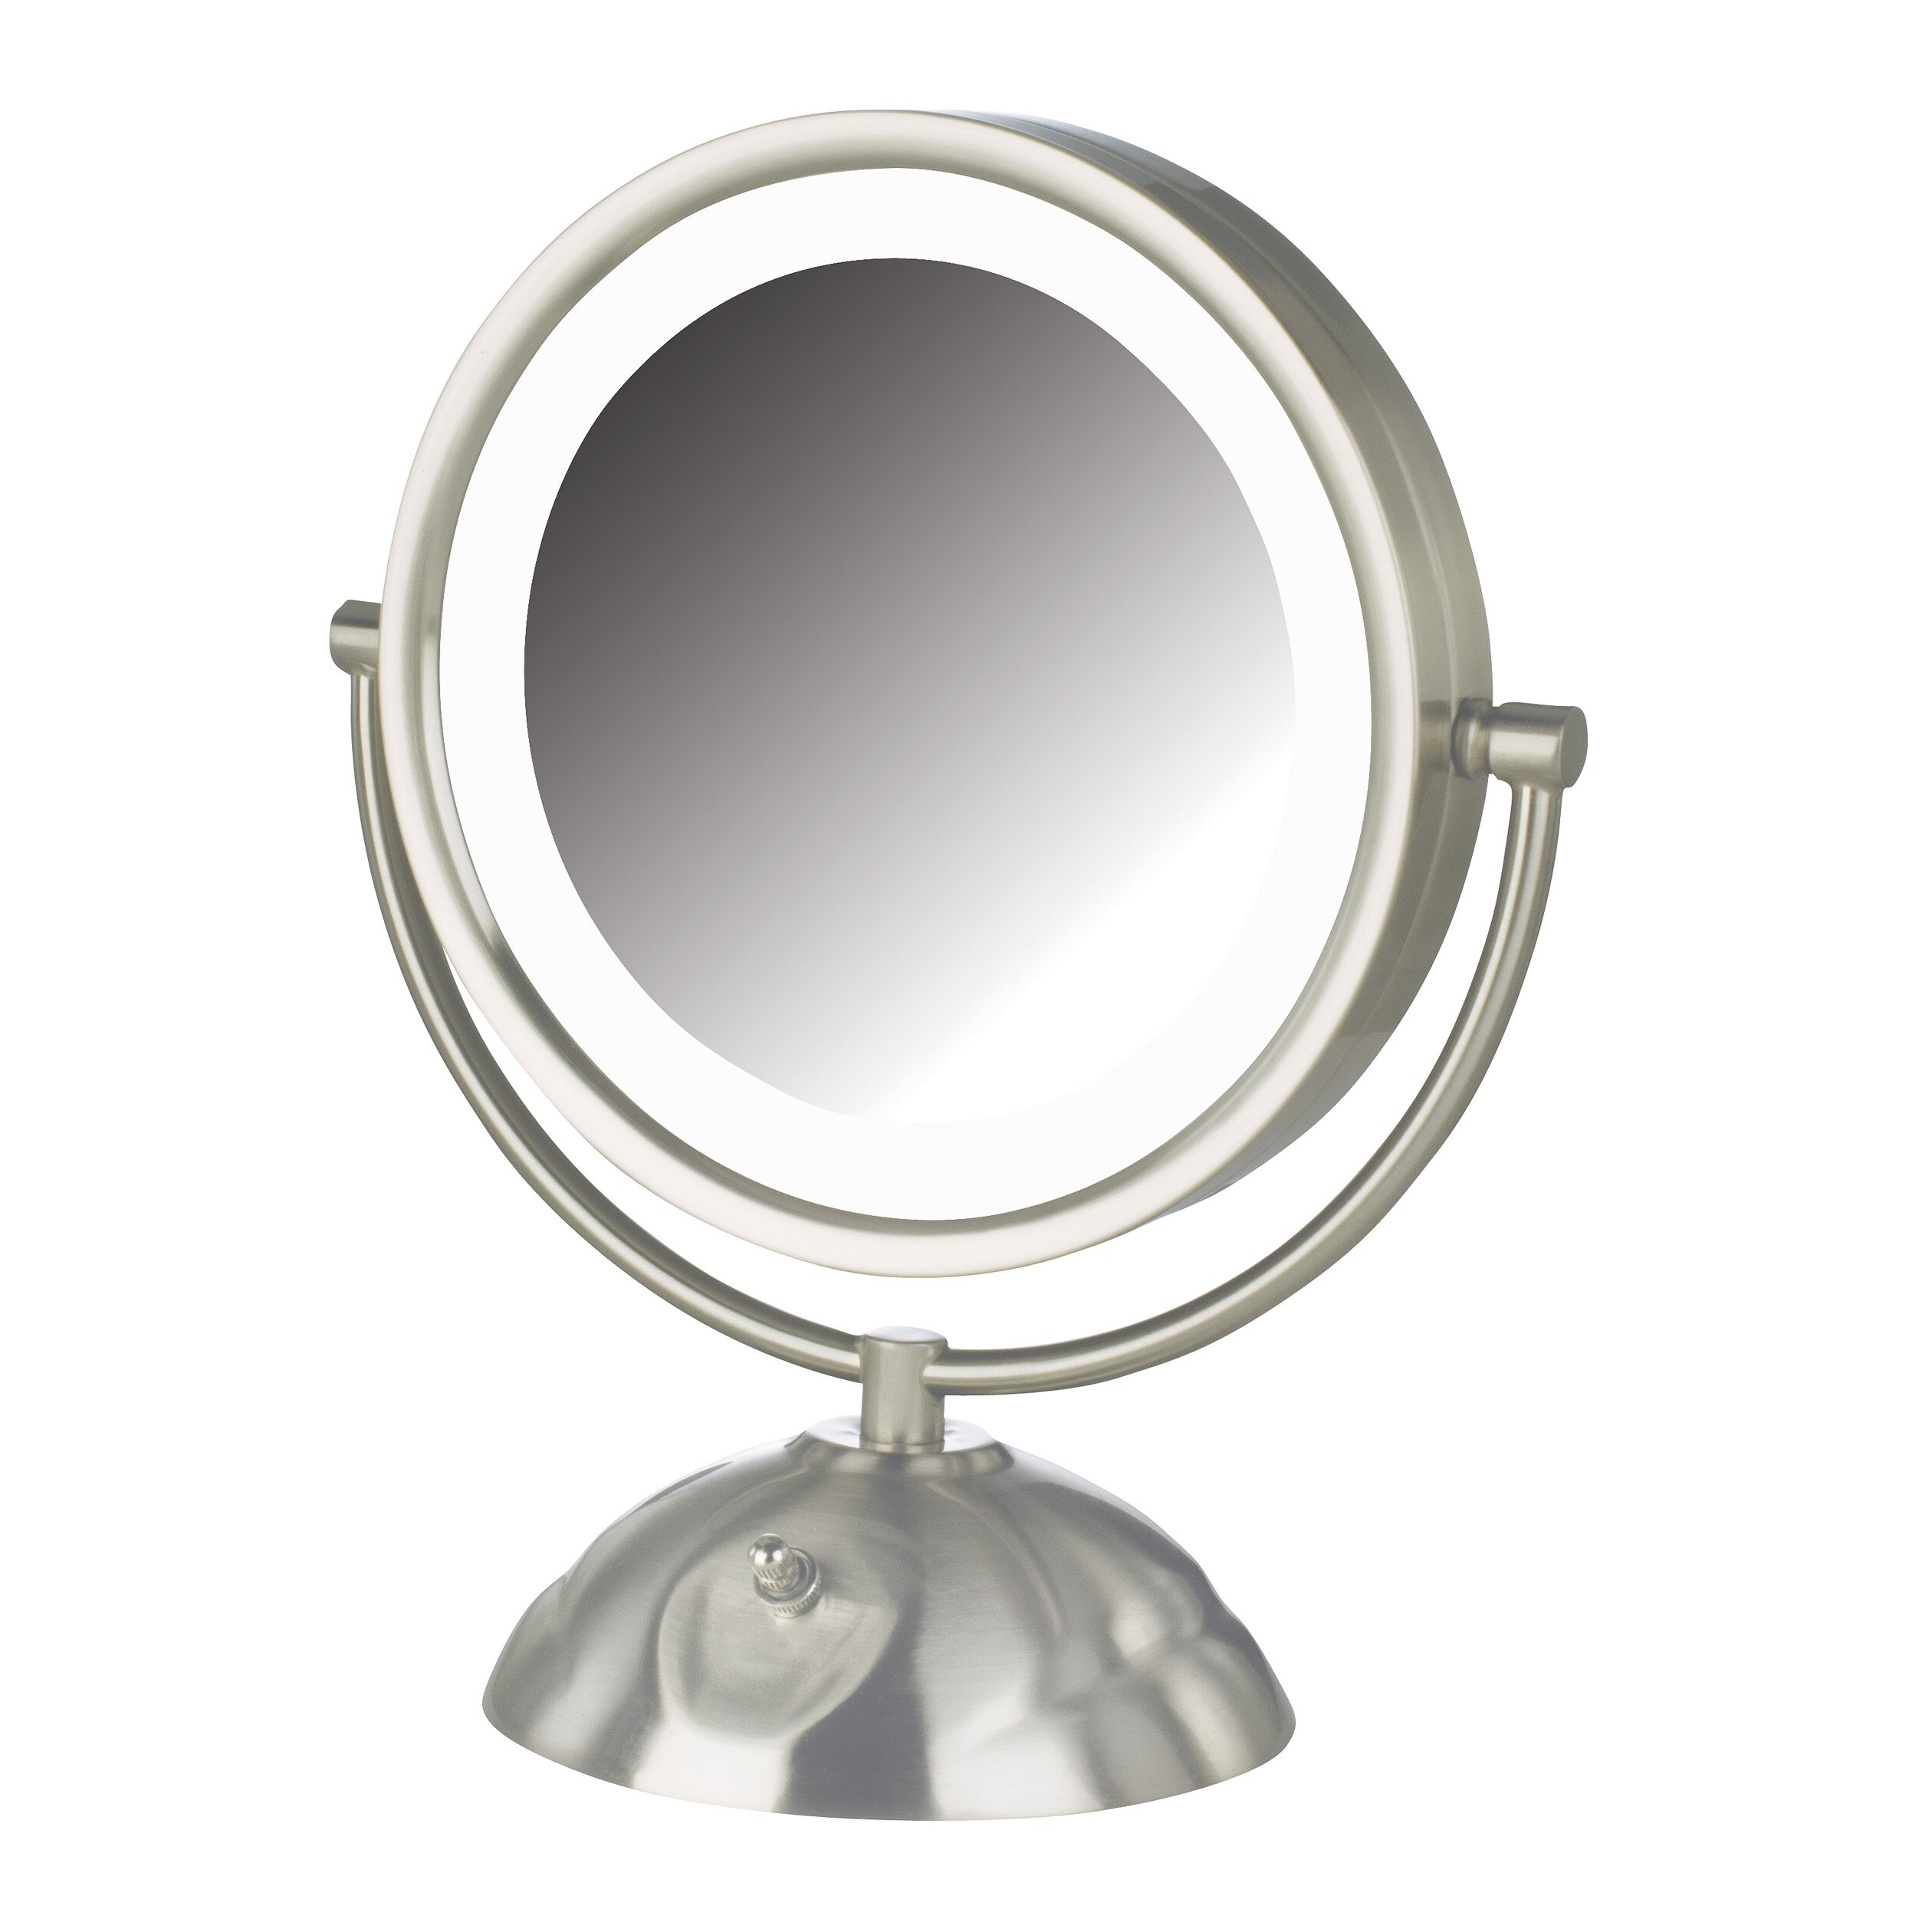 Vanity Mirror With Lights : Jerdon Lighted Vanity Mirror & Reviews Wayfair